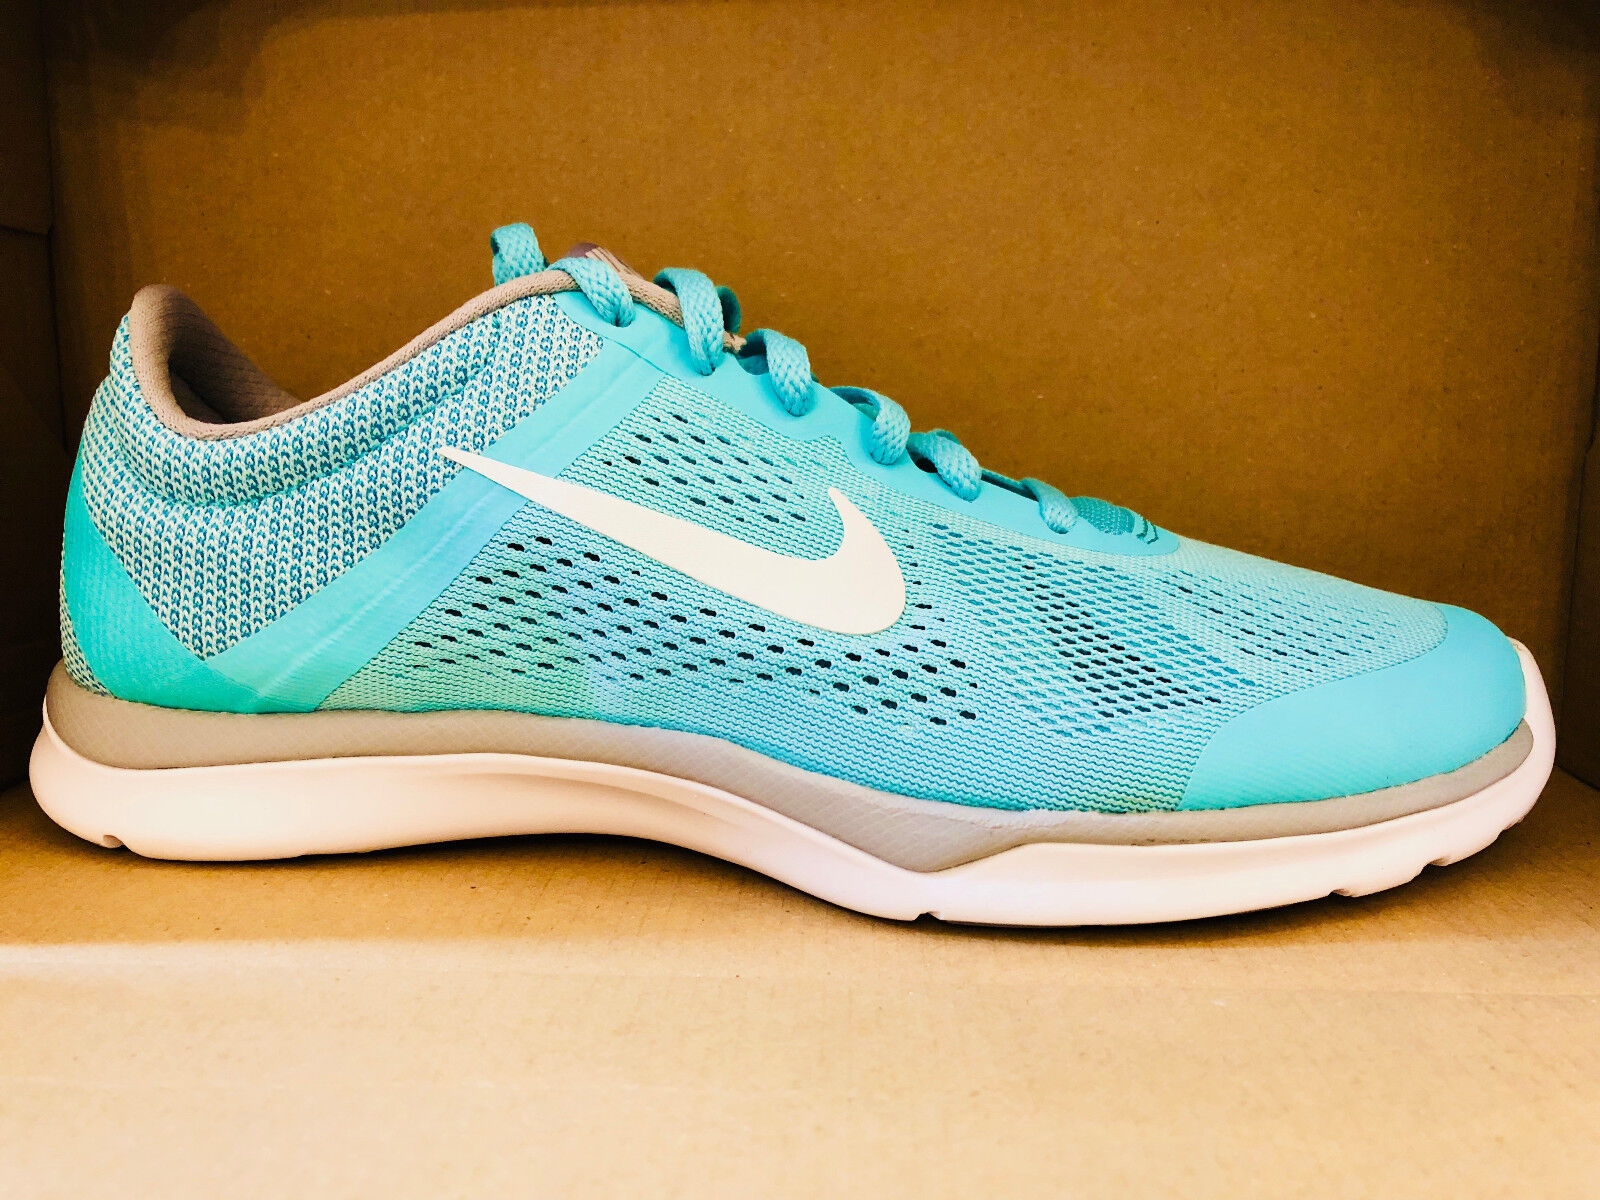 NIKE WOMEN'S IN-SEASON TR 5 SHOES hyper turquoise white grey 807333 301 Great discount